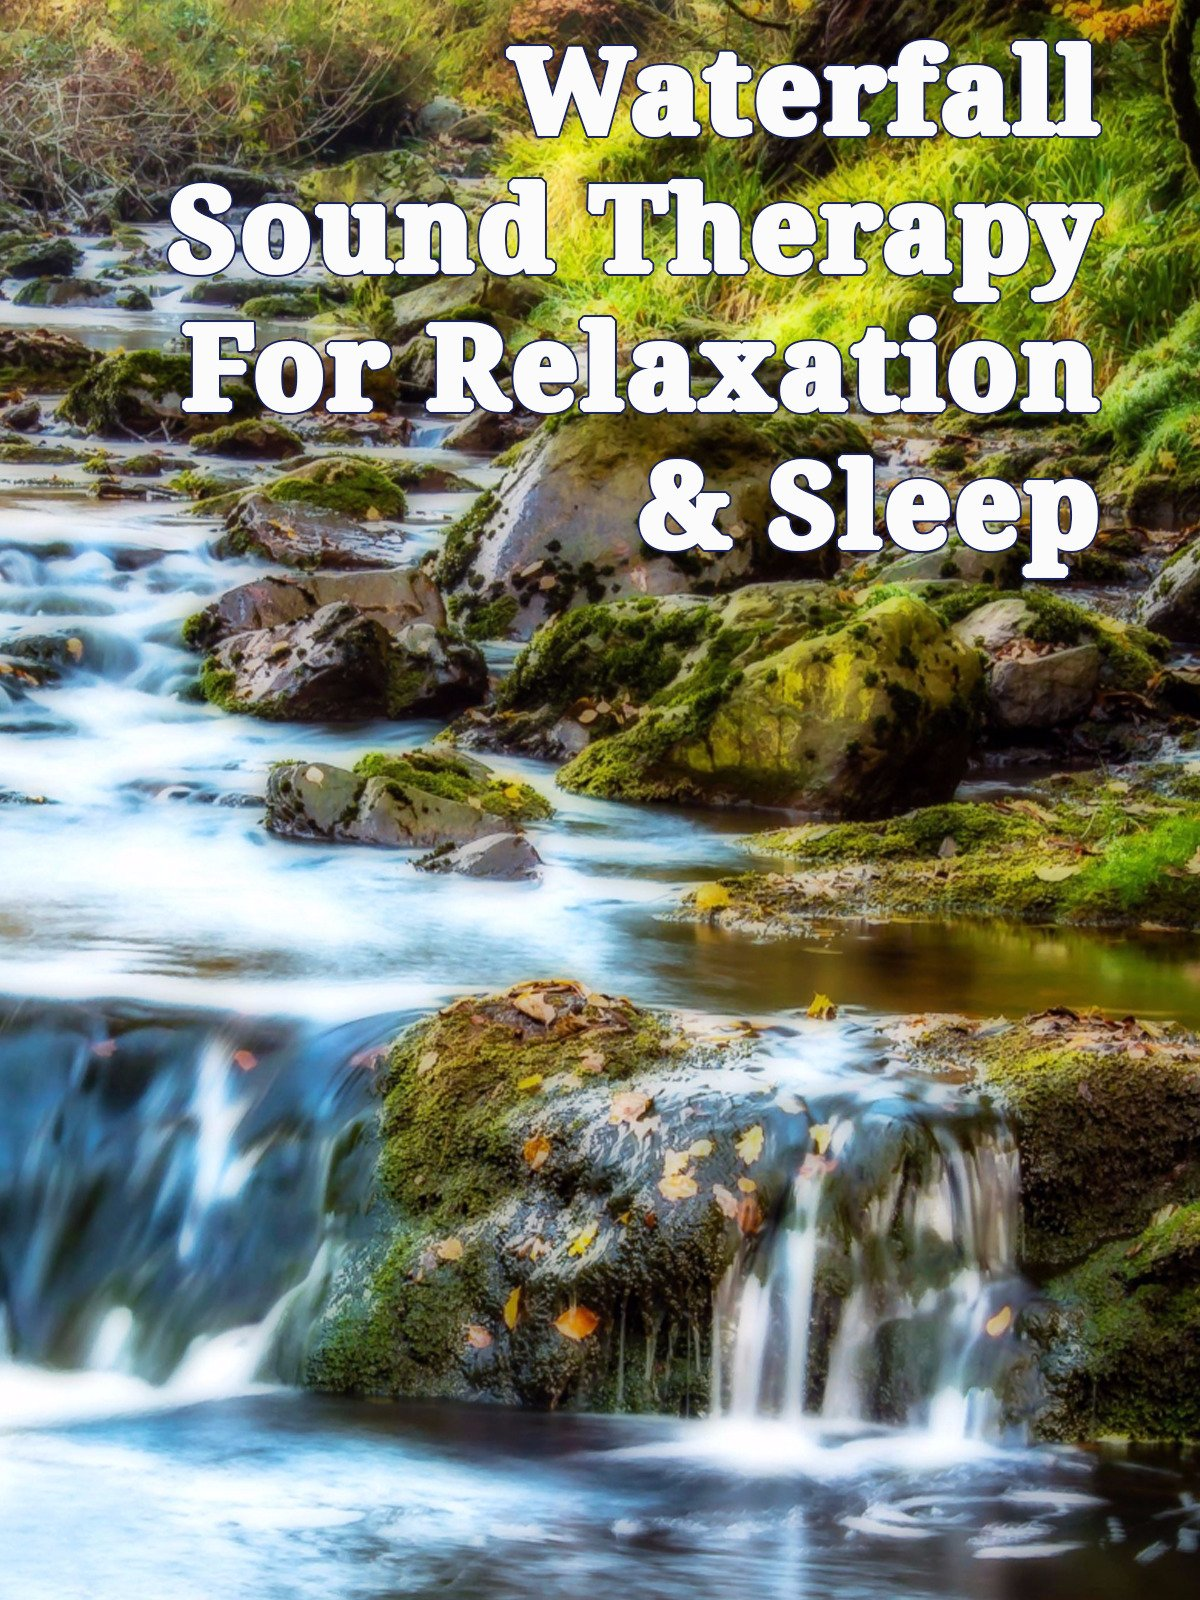 Waterfall Sound Therapy For Relaxation & Sleep